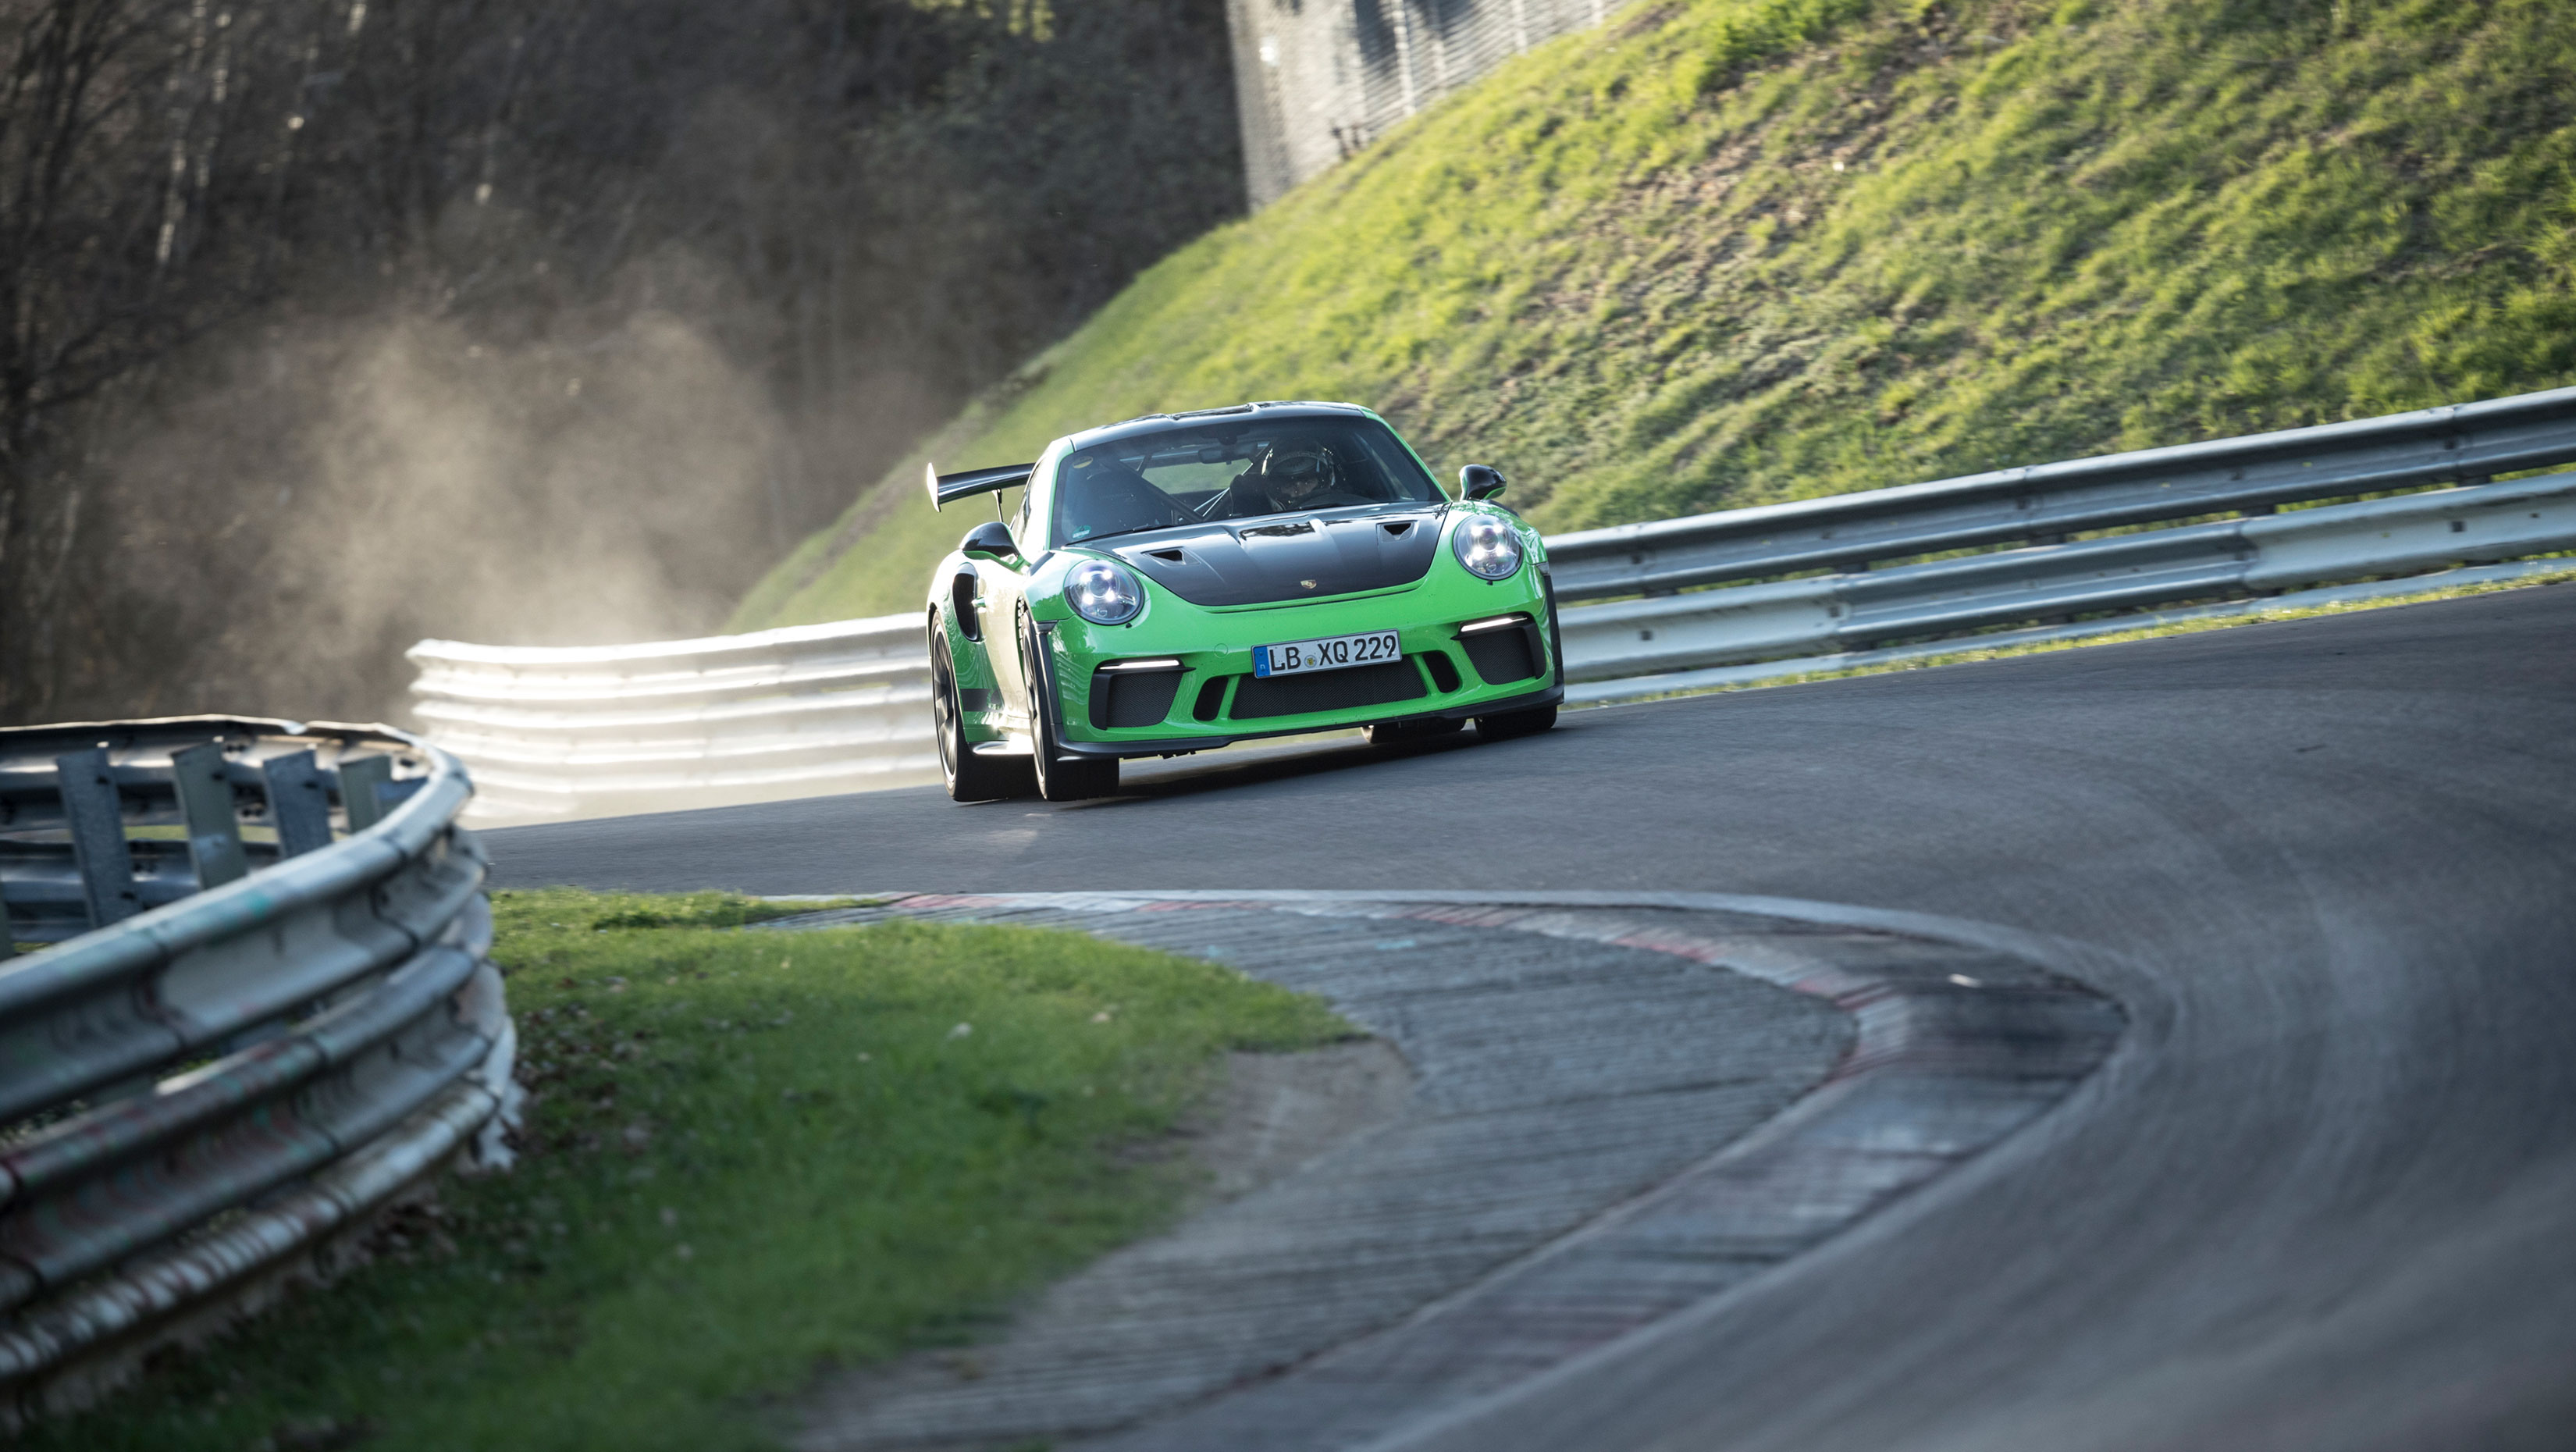 TrackWorthy - Porsche 911 GT3 RS Nurburgring Record - 01